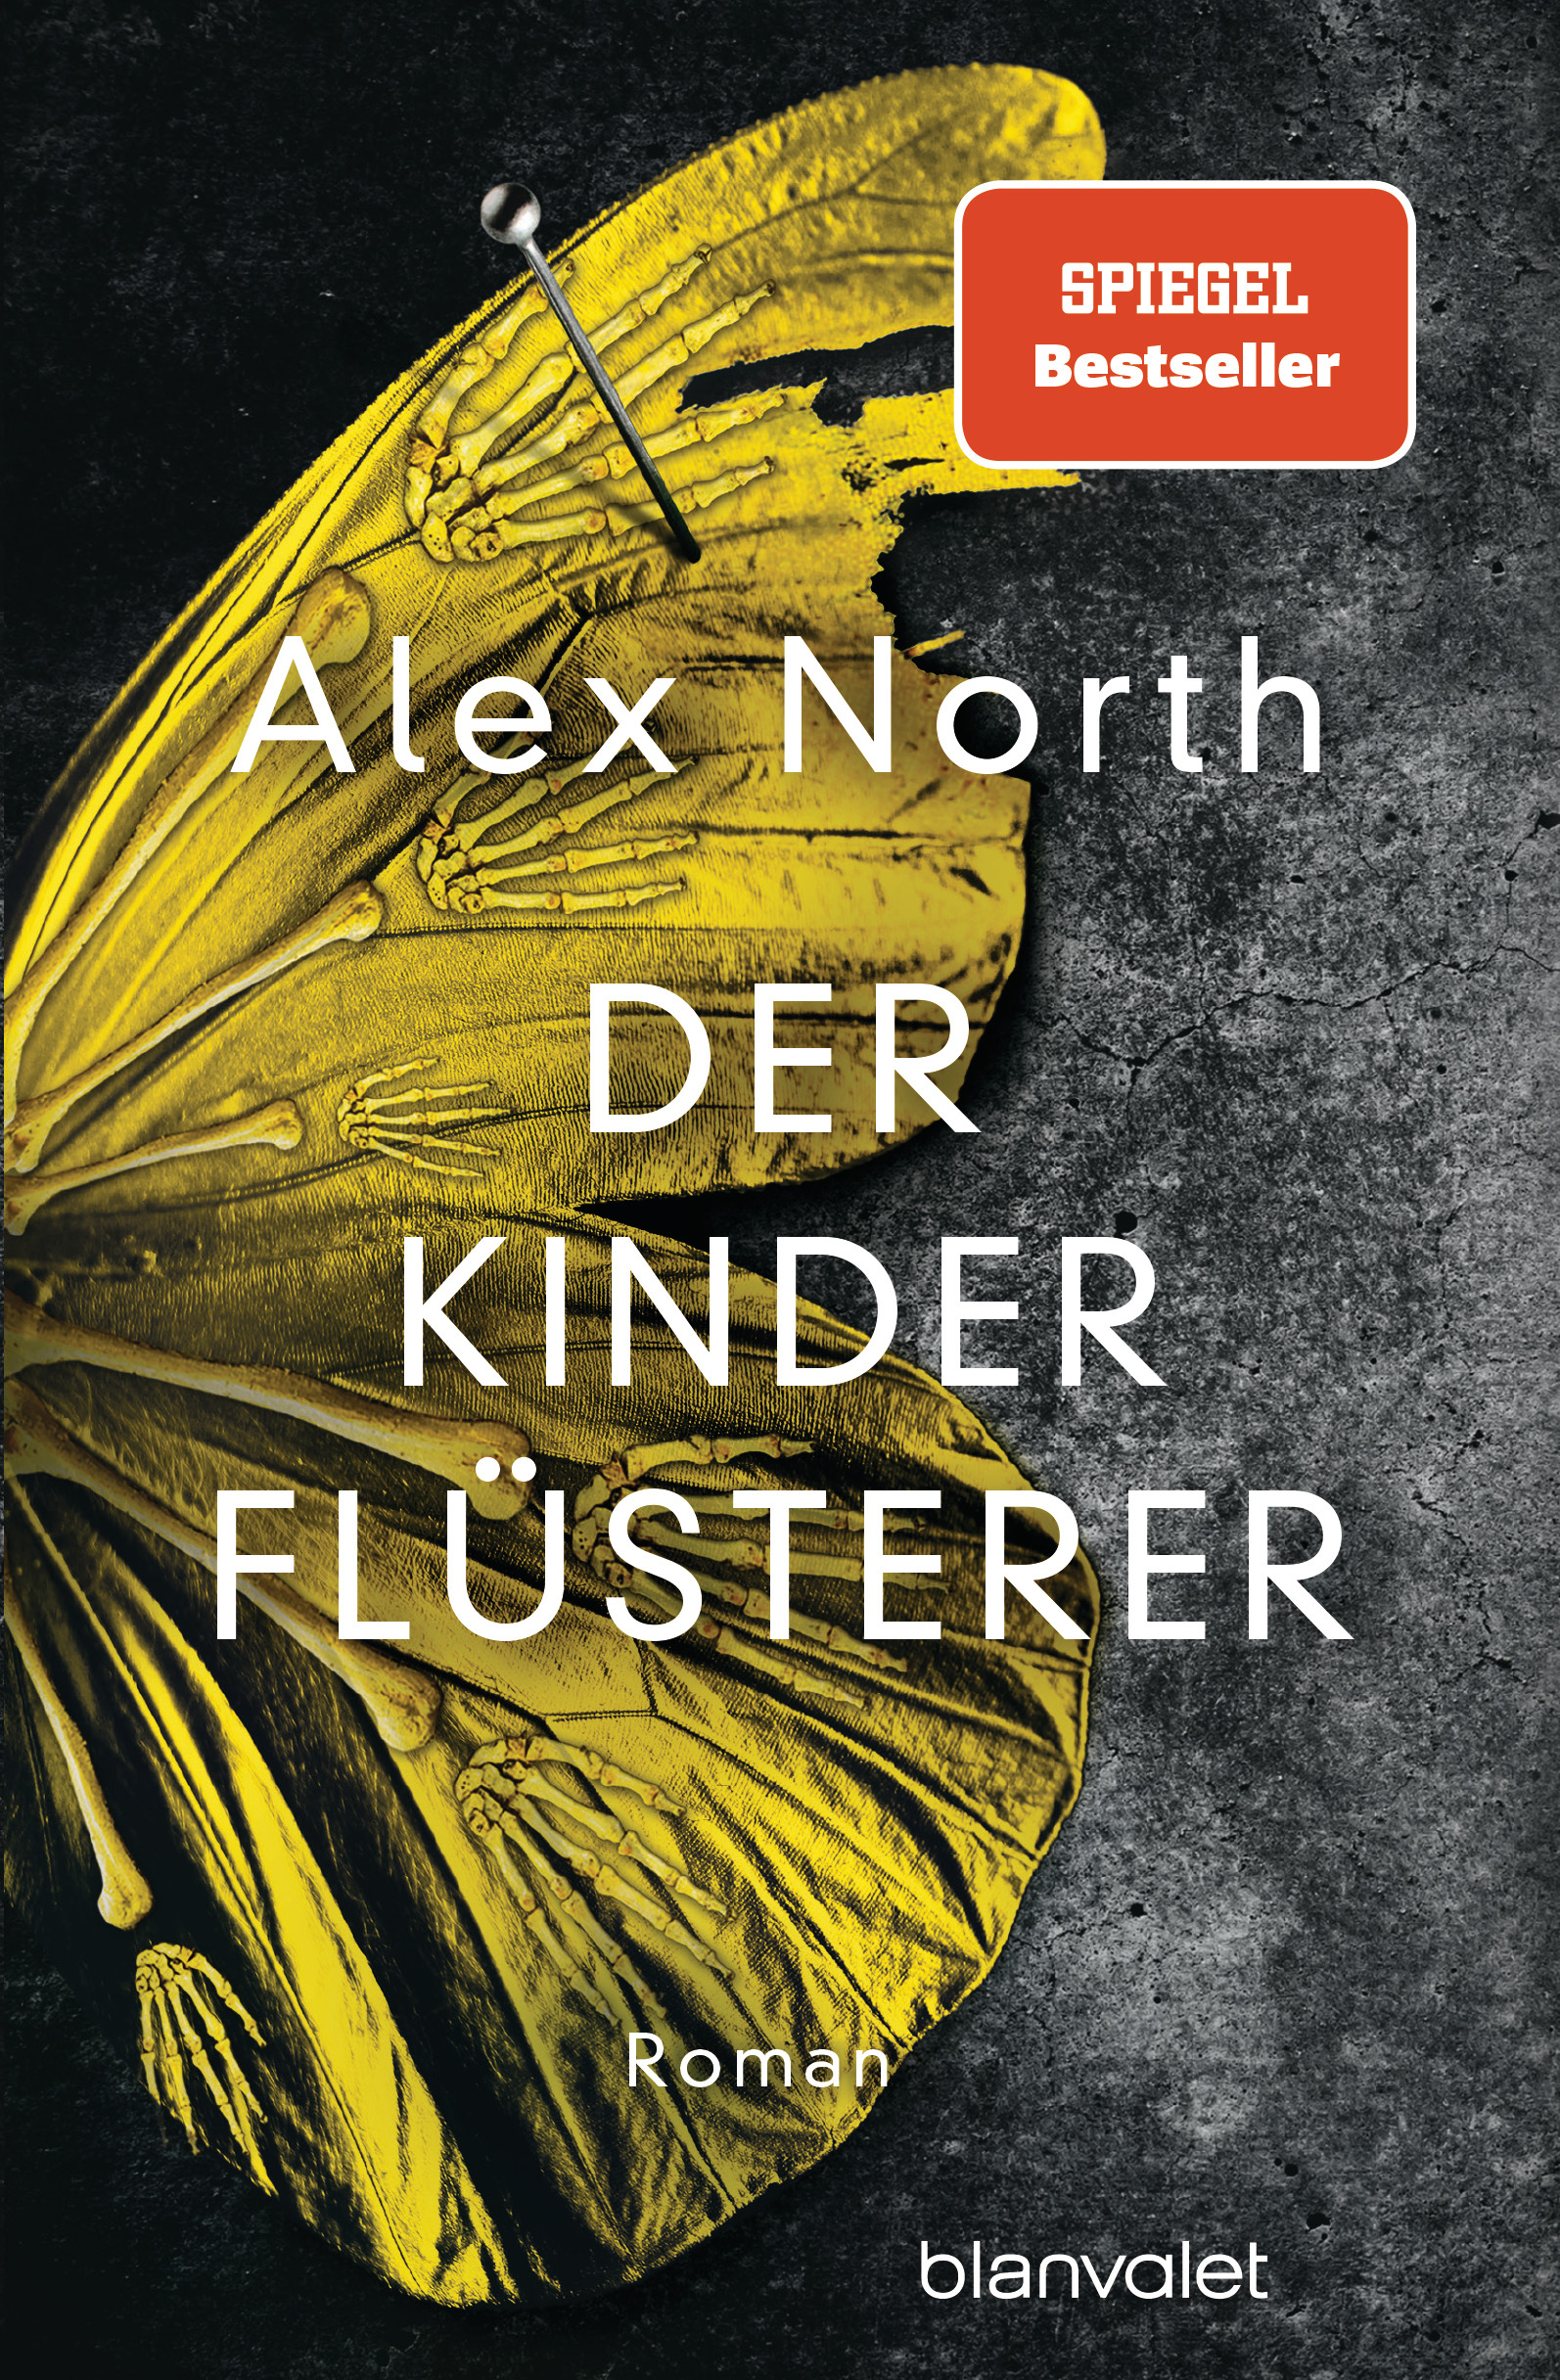 North_Kinderfluesterer_SPIEGEL